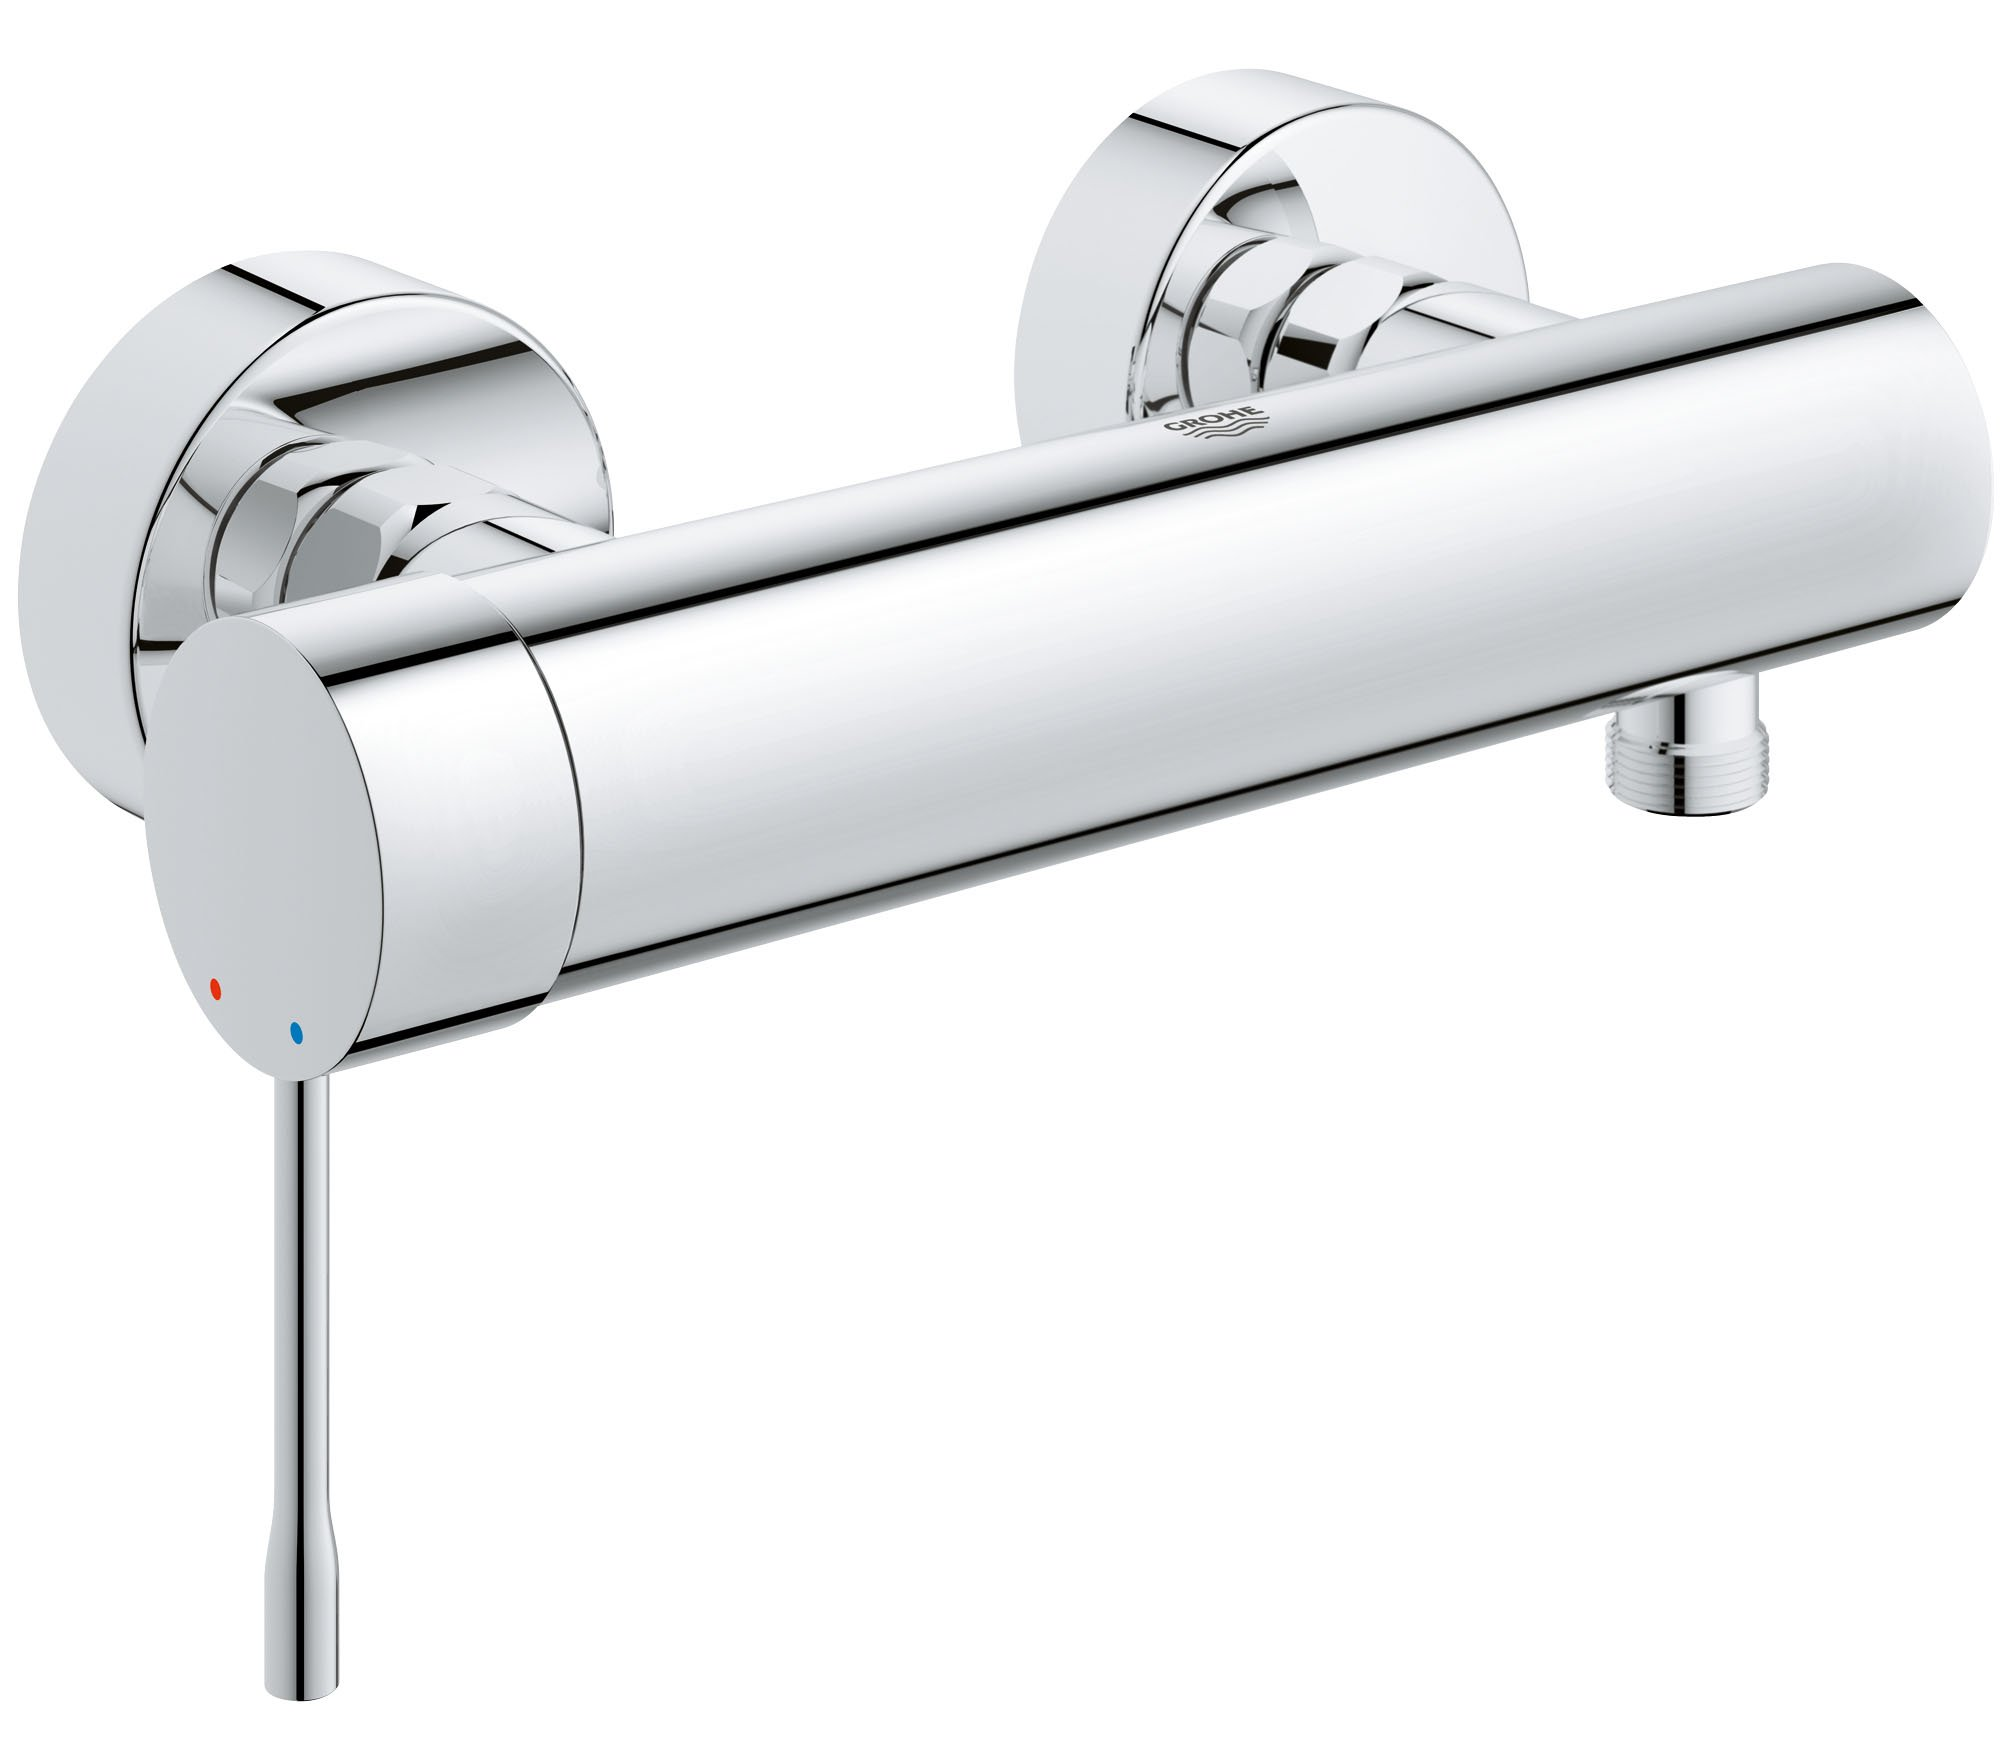 Baterie de dus Grohe Essence New-33636001 imagine 2021 baterii-lux.ro